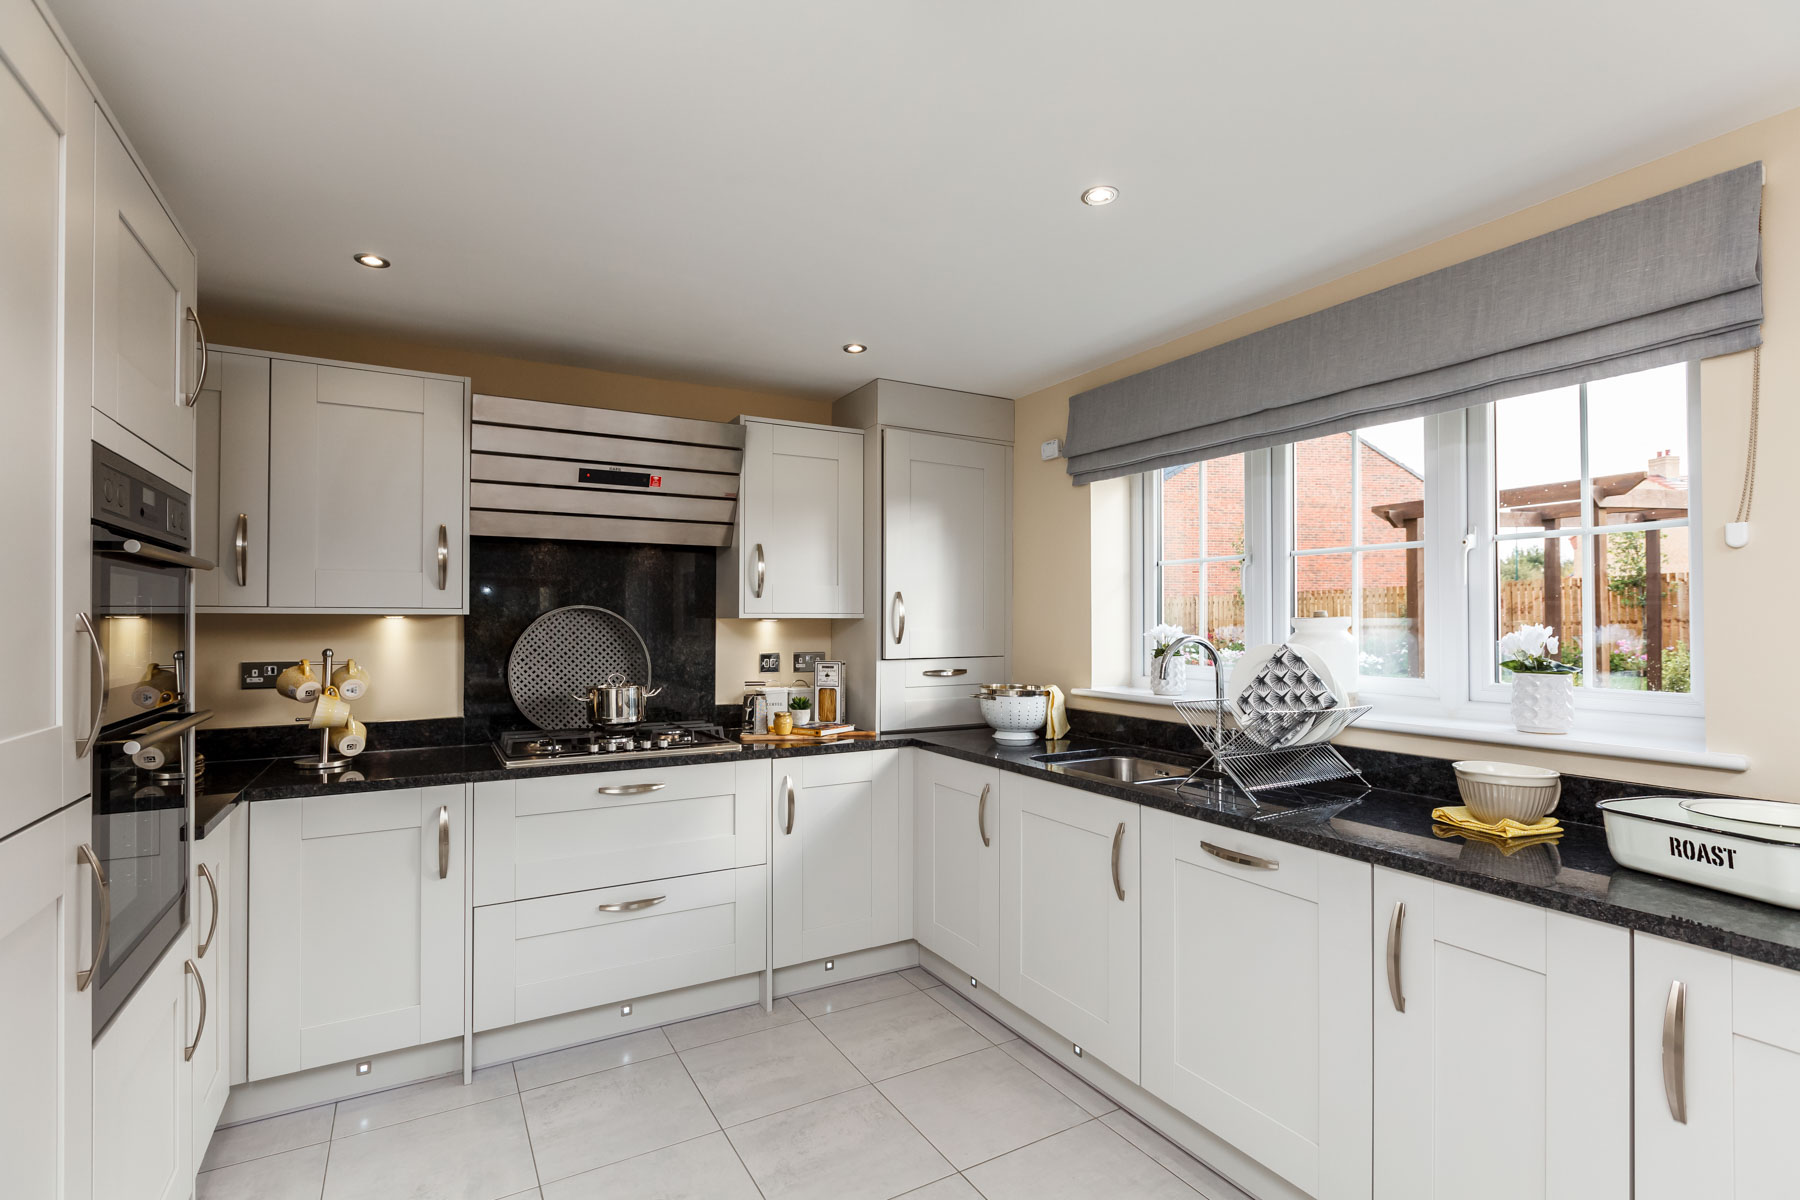 Taylor Wimpey Exeter - Cranbrook - Shelford example kitchen 2